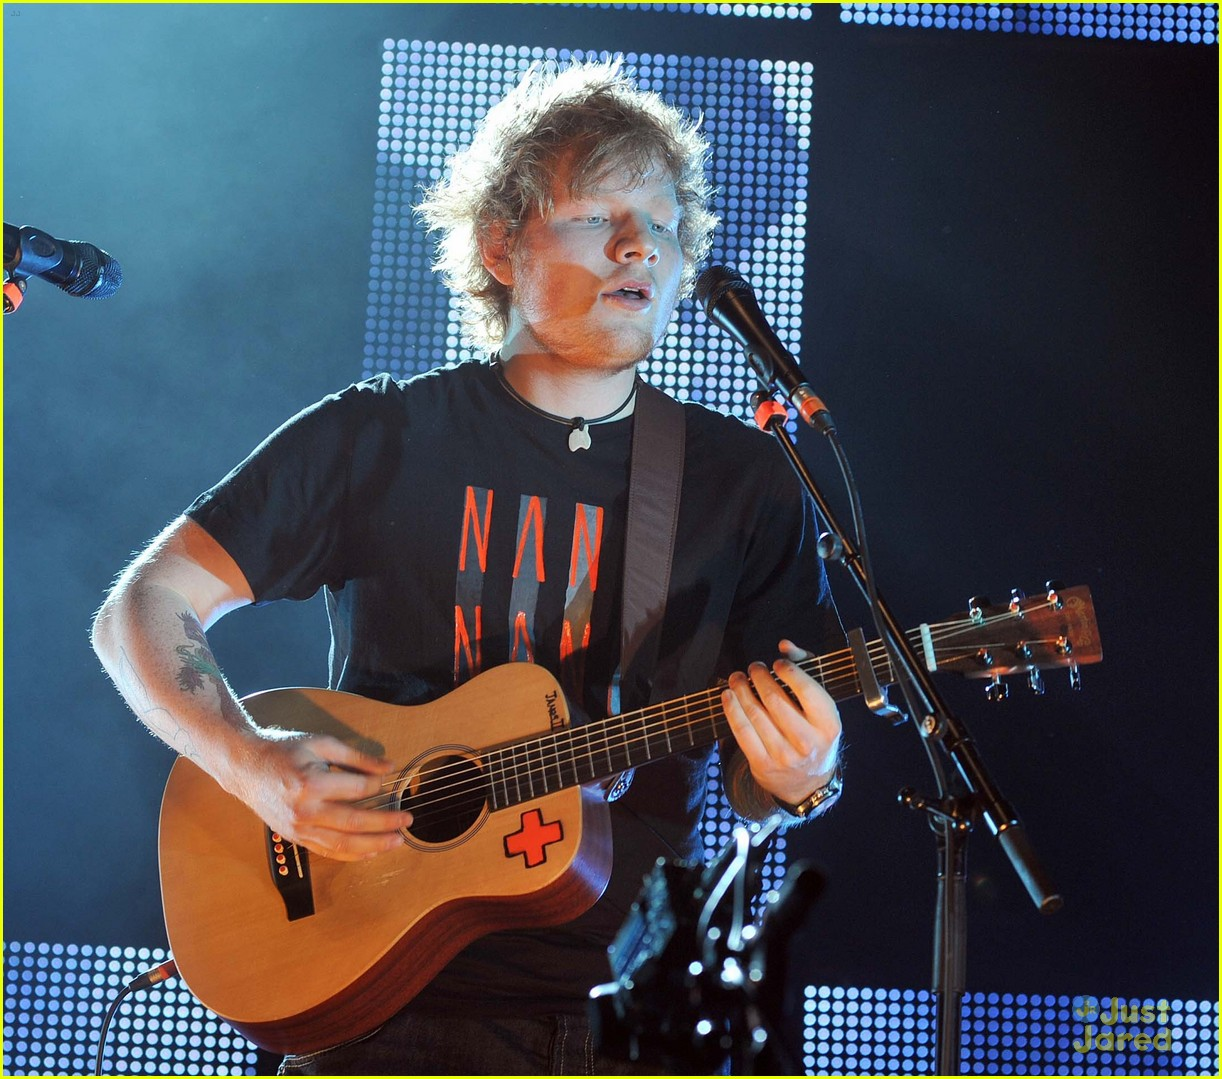 ed sheeran dublin tour stop 03